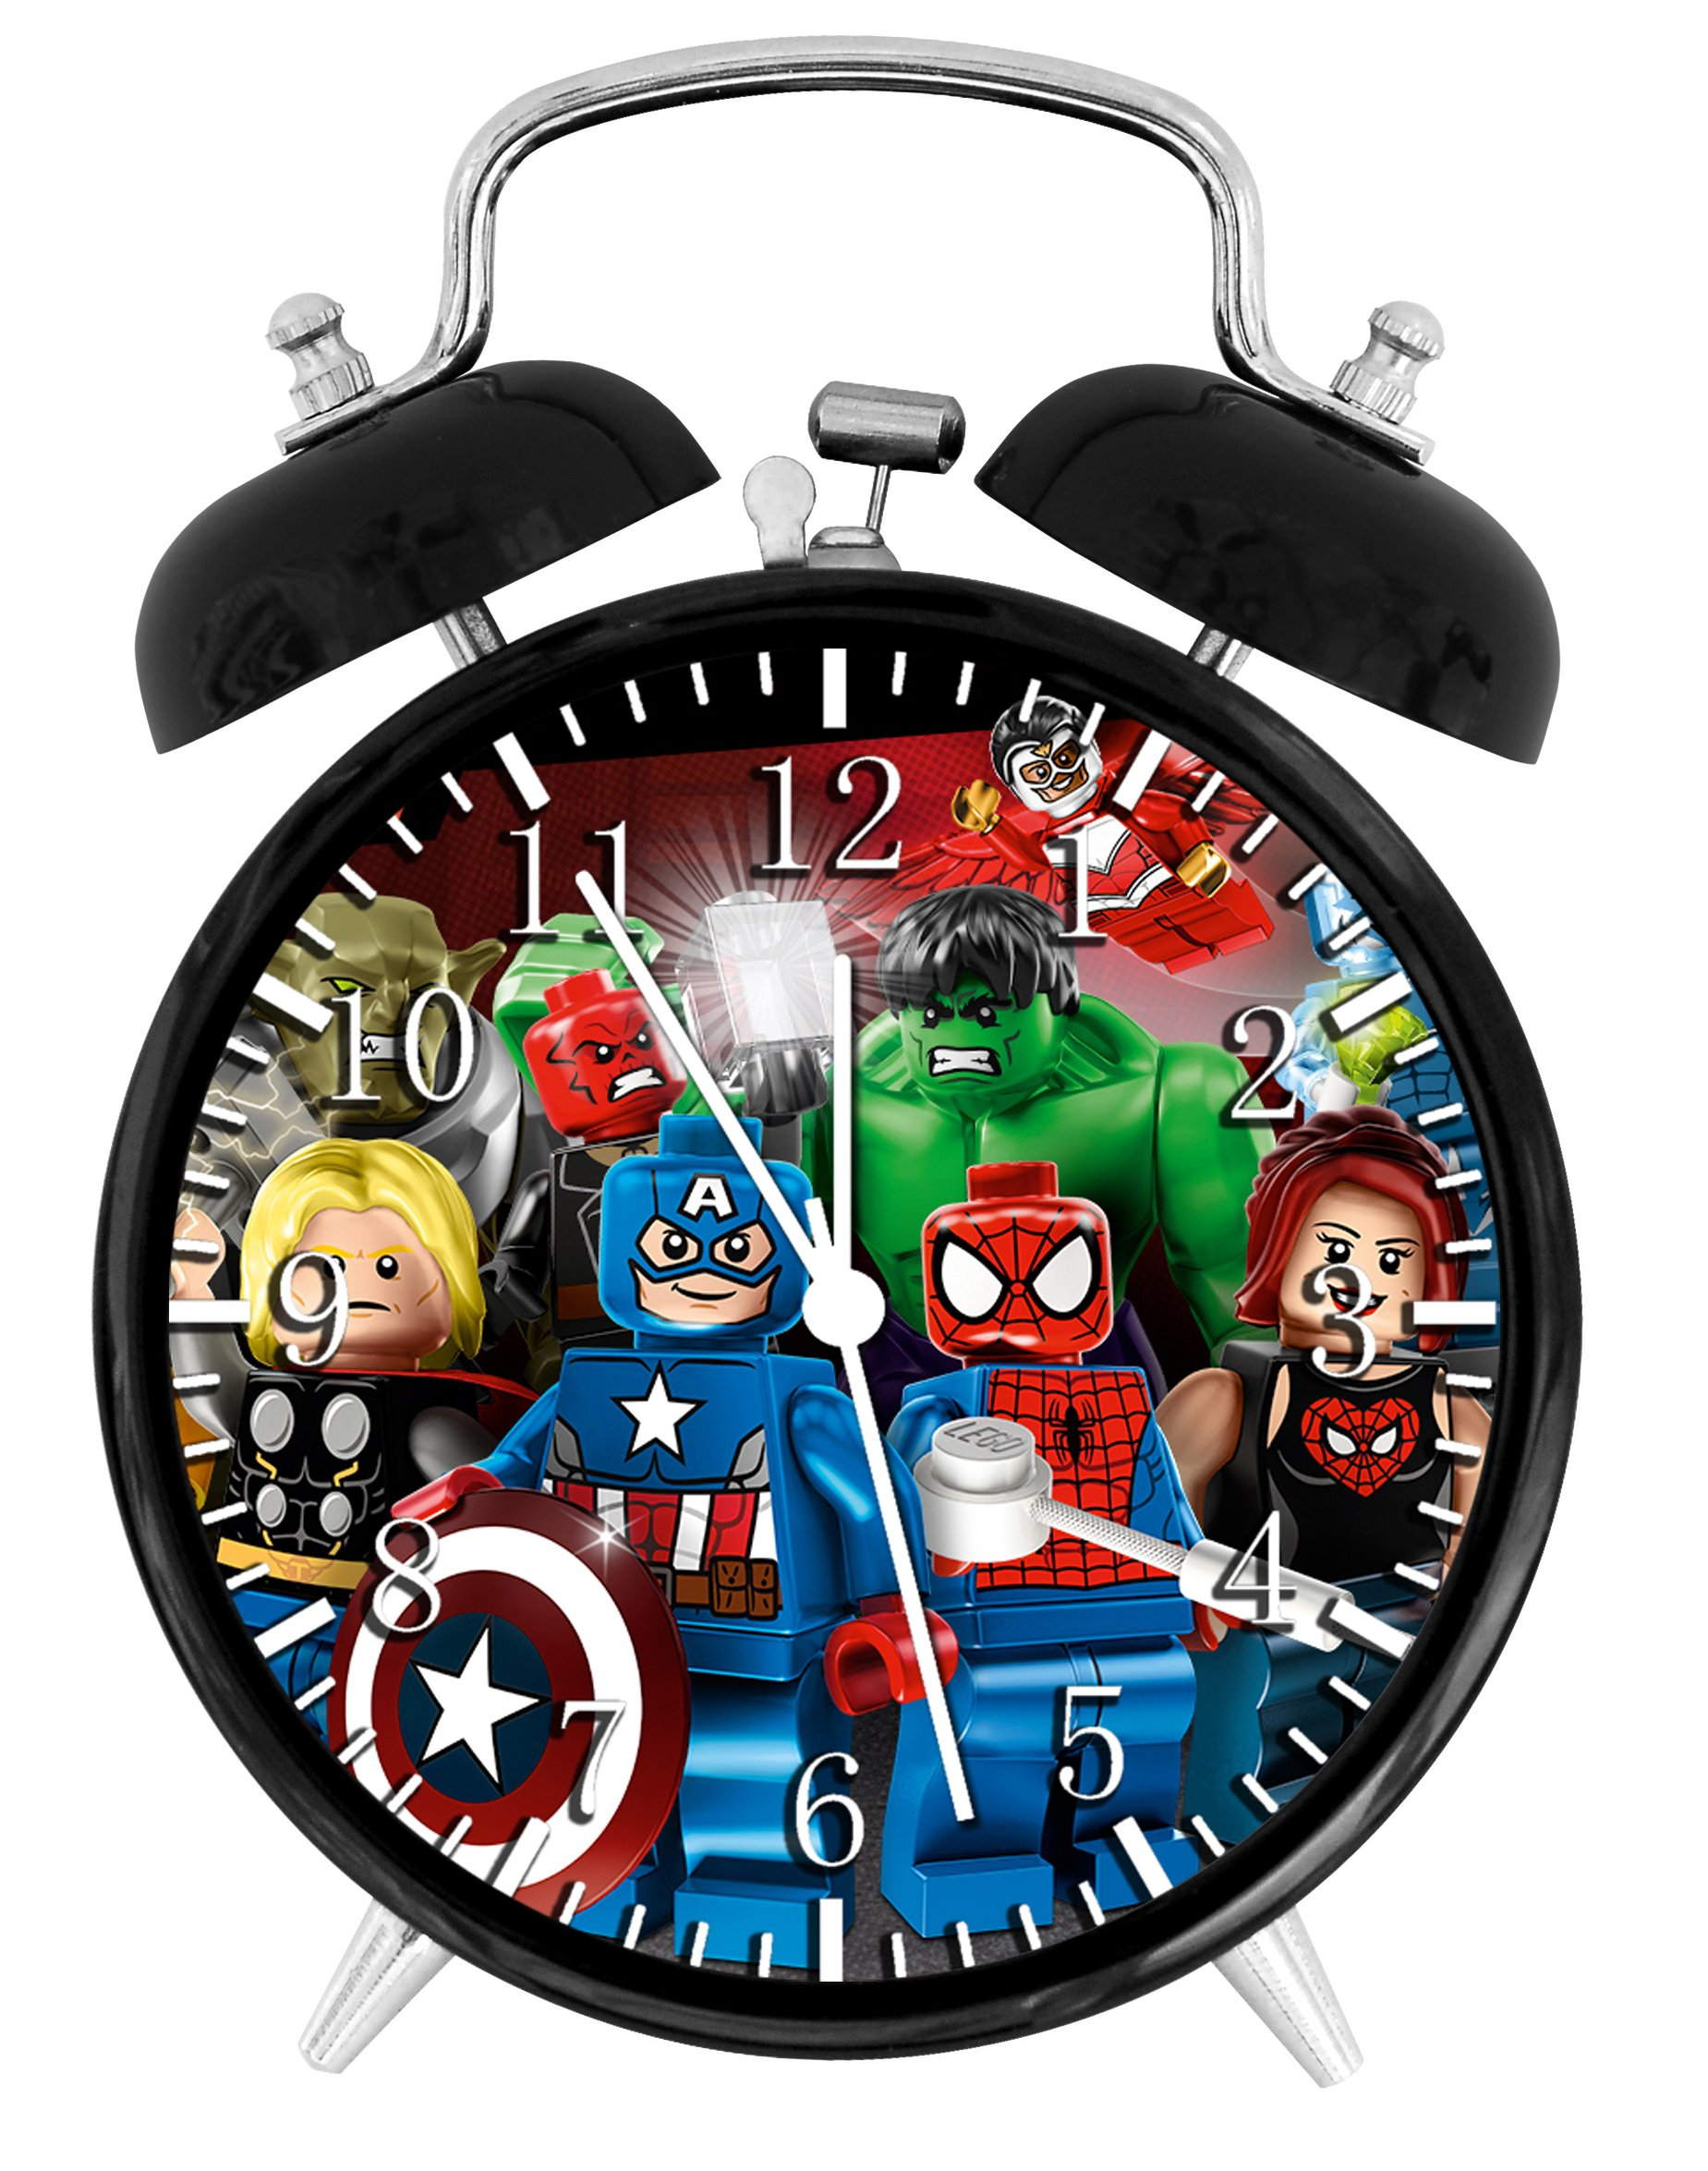 Lego Avengers Super Hero Alarm Desk Clock Home Office Decor F158 Nice For Gifts